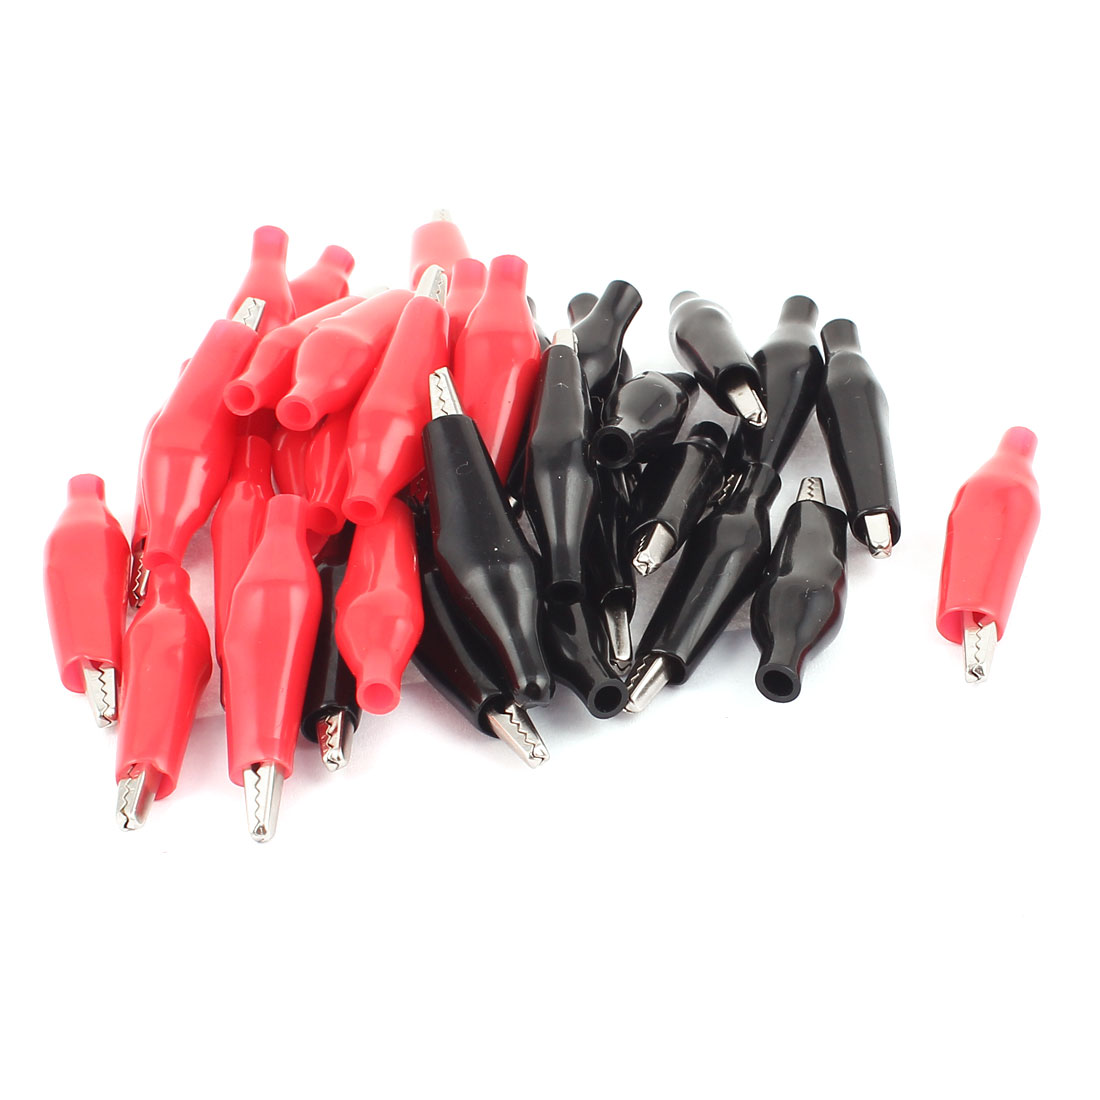 36 Pcs Crocodile Alligator Test Clip for Electrical Jumpers Wire Cable Red Black